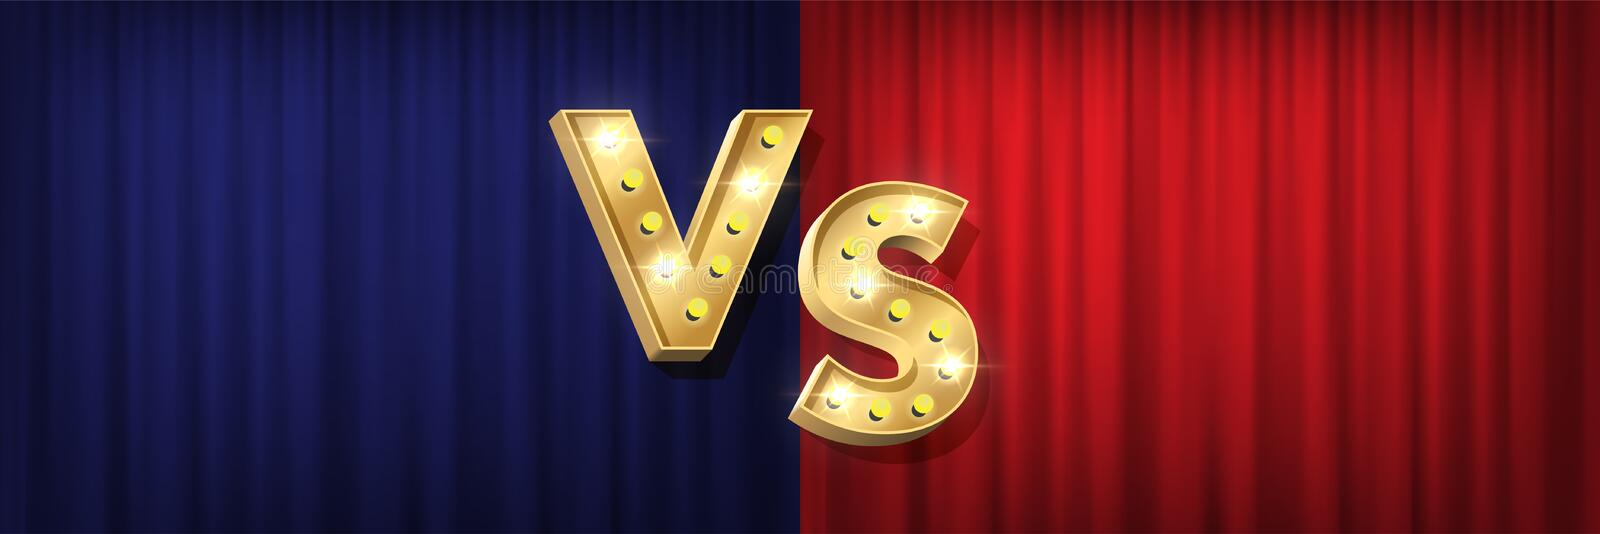 Versus screen design. Vector golden VS letters with shiny bulbs on red and blue curtain backgrounds. vector illustration